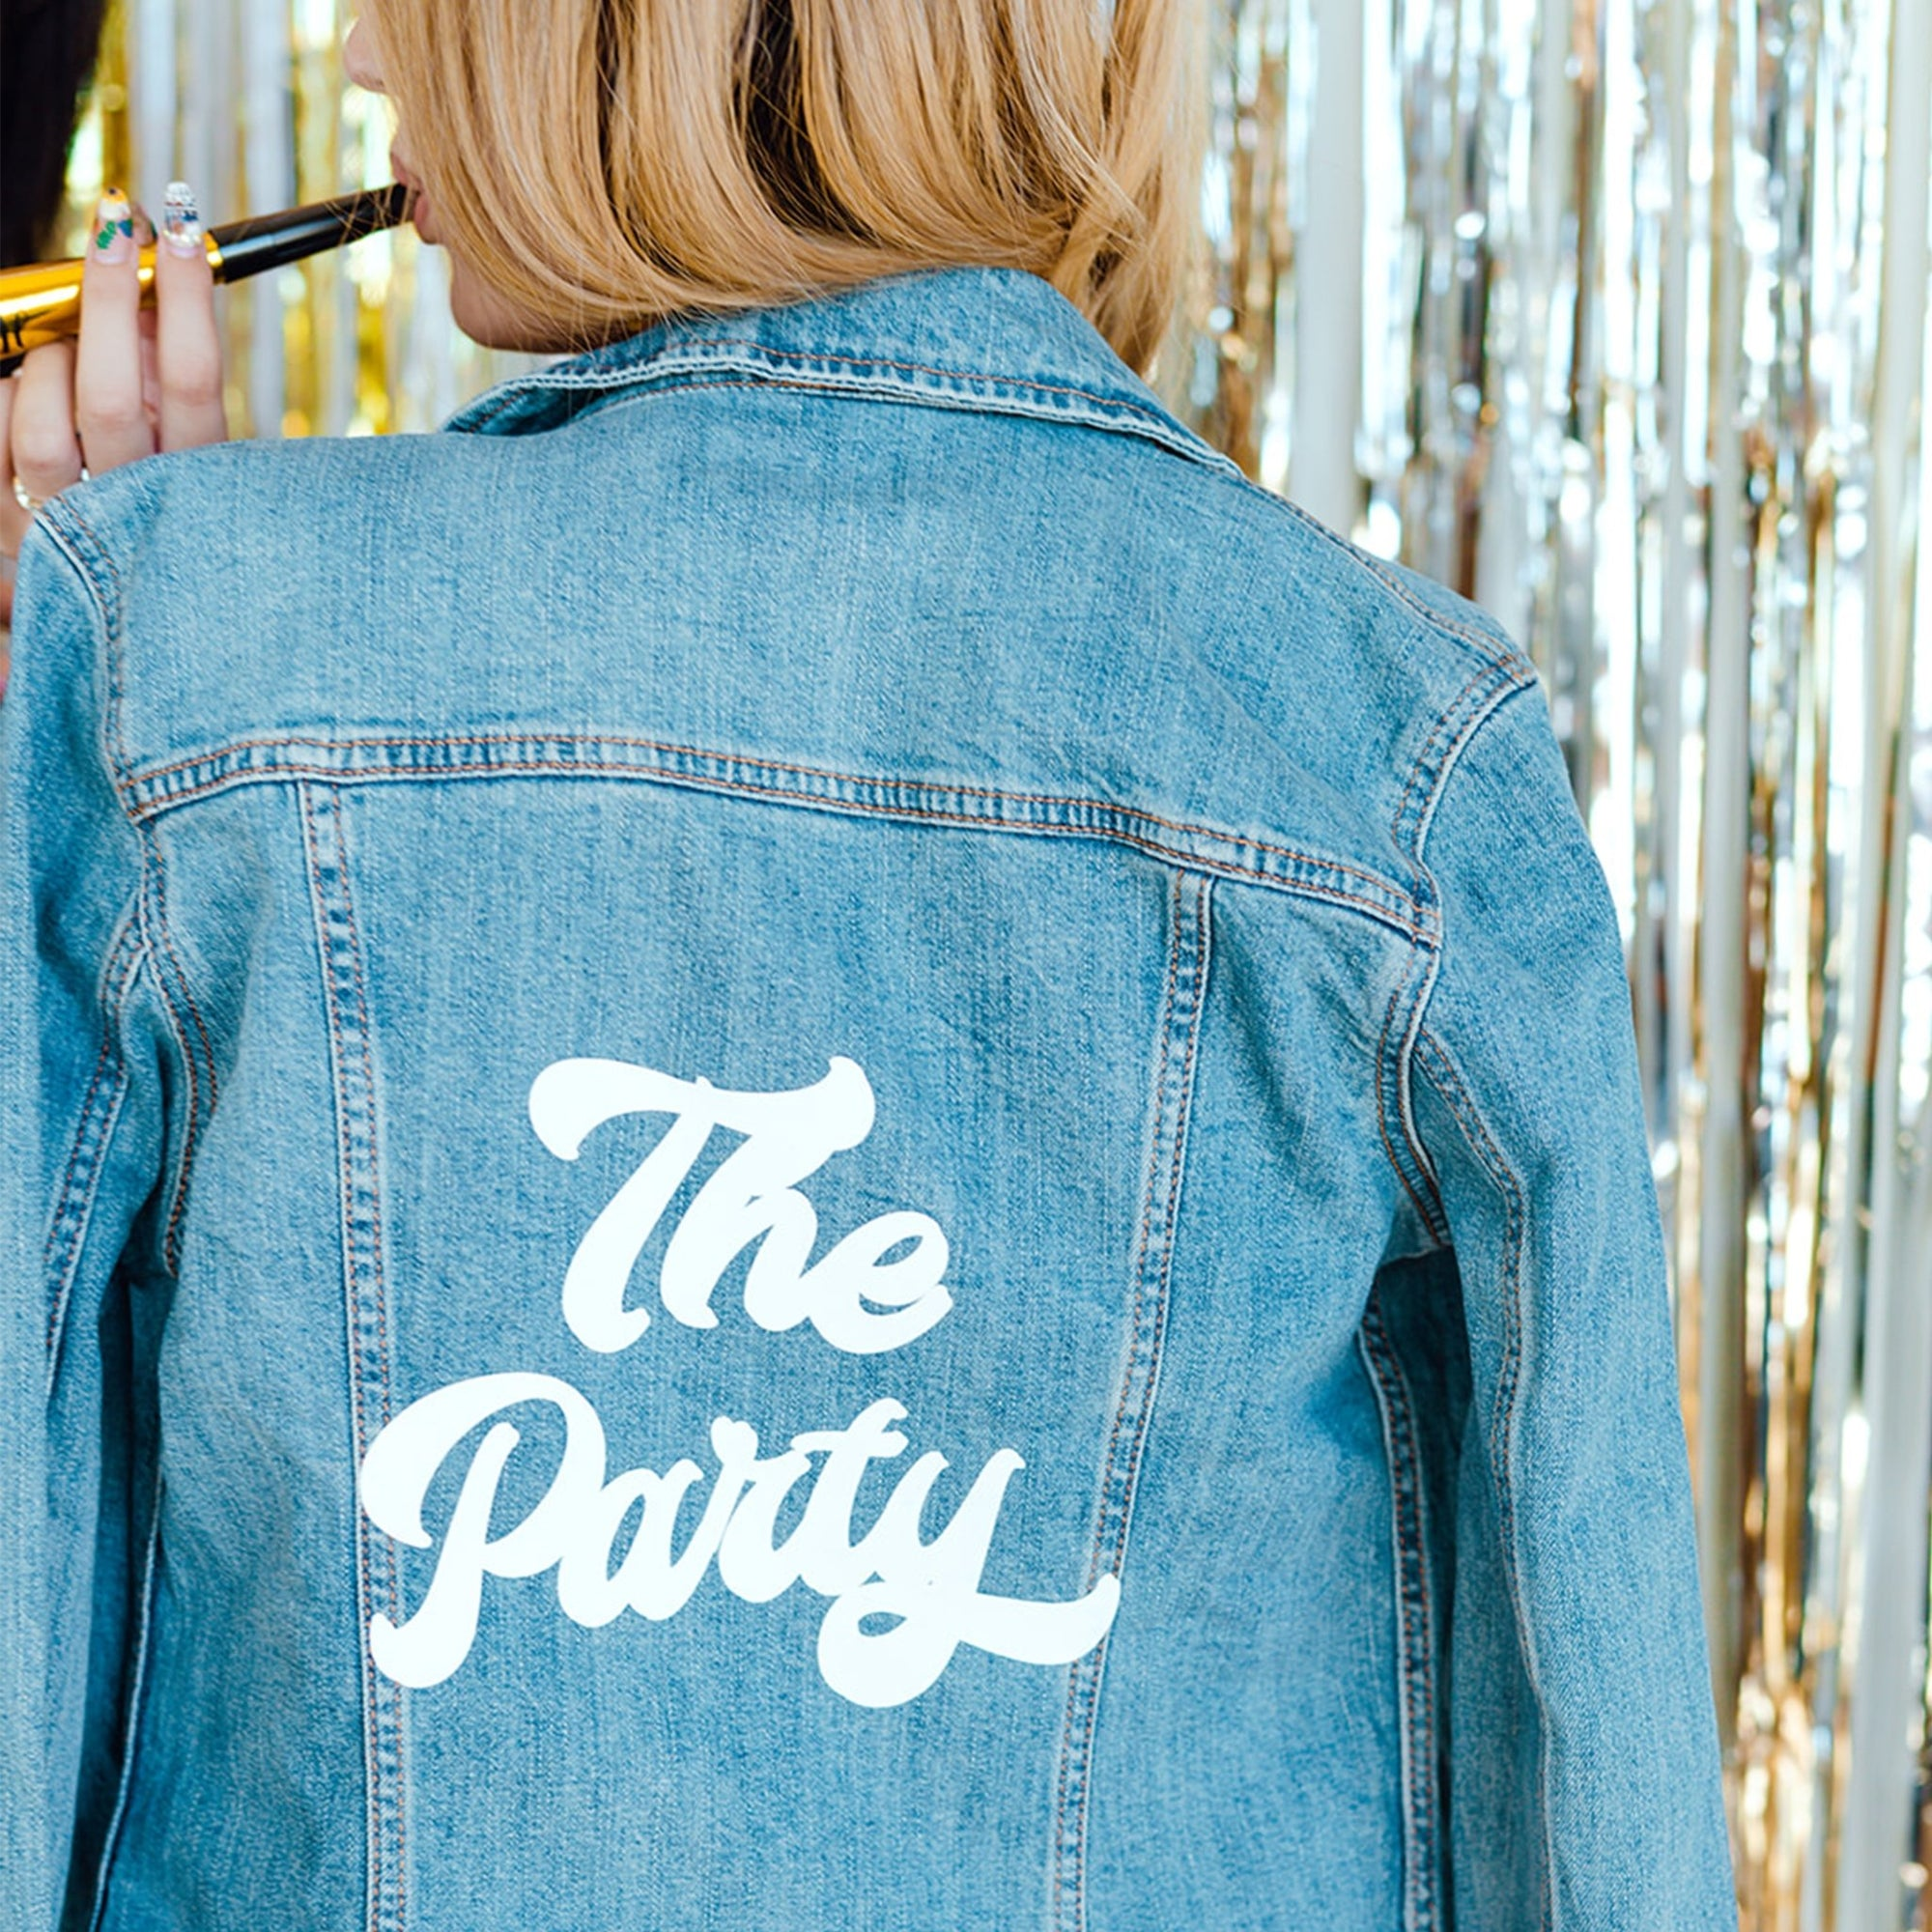 The Party Denim Jacket - Sprinkled With Pink #bachelorette #custom #gifts